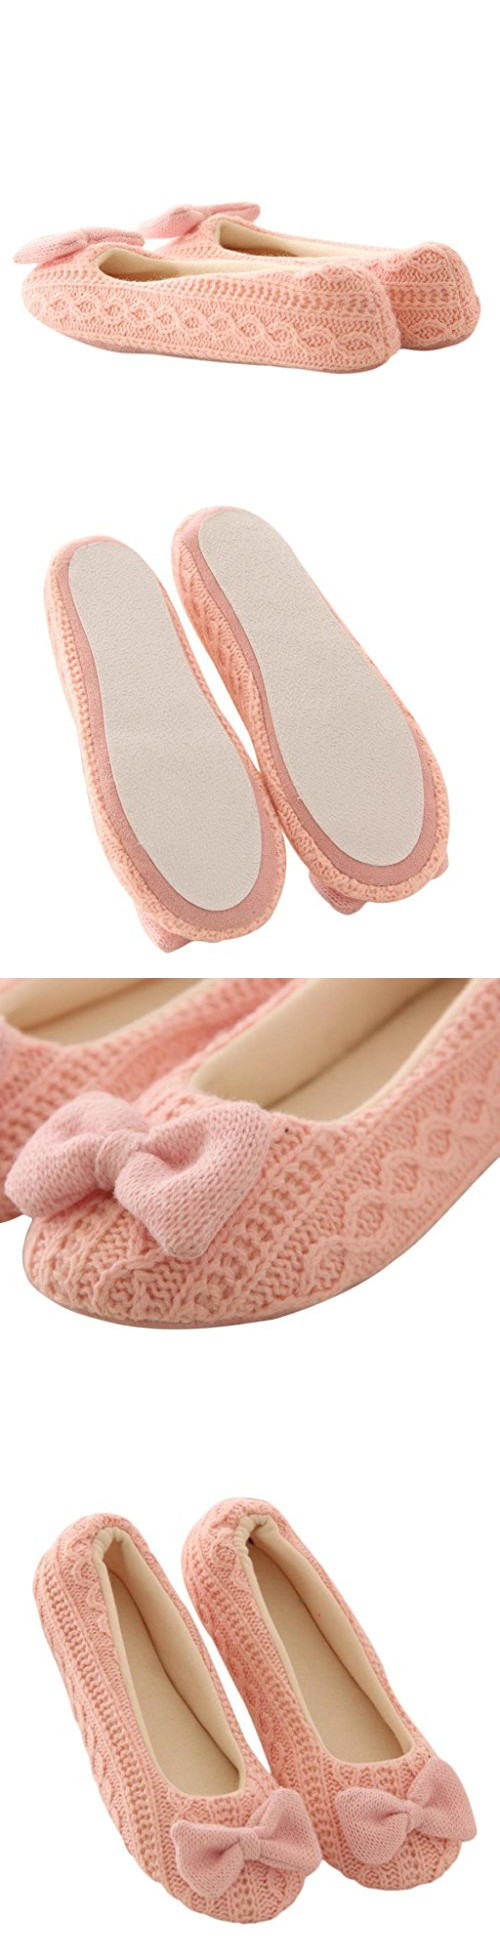 Yoga Shoes, ✽ANGLIN✽ Women Indoor Bowknot Cashmere Warm Yoga Shoes (S, Pink)